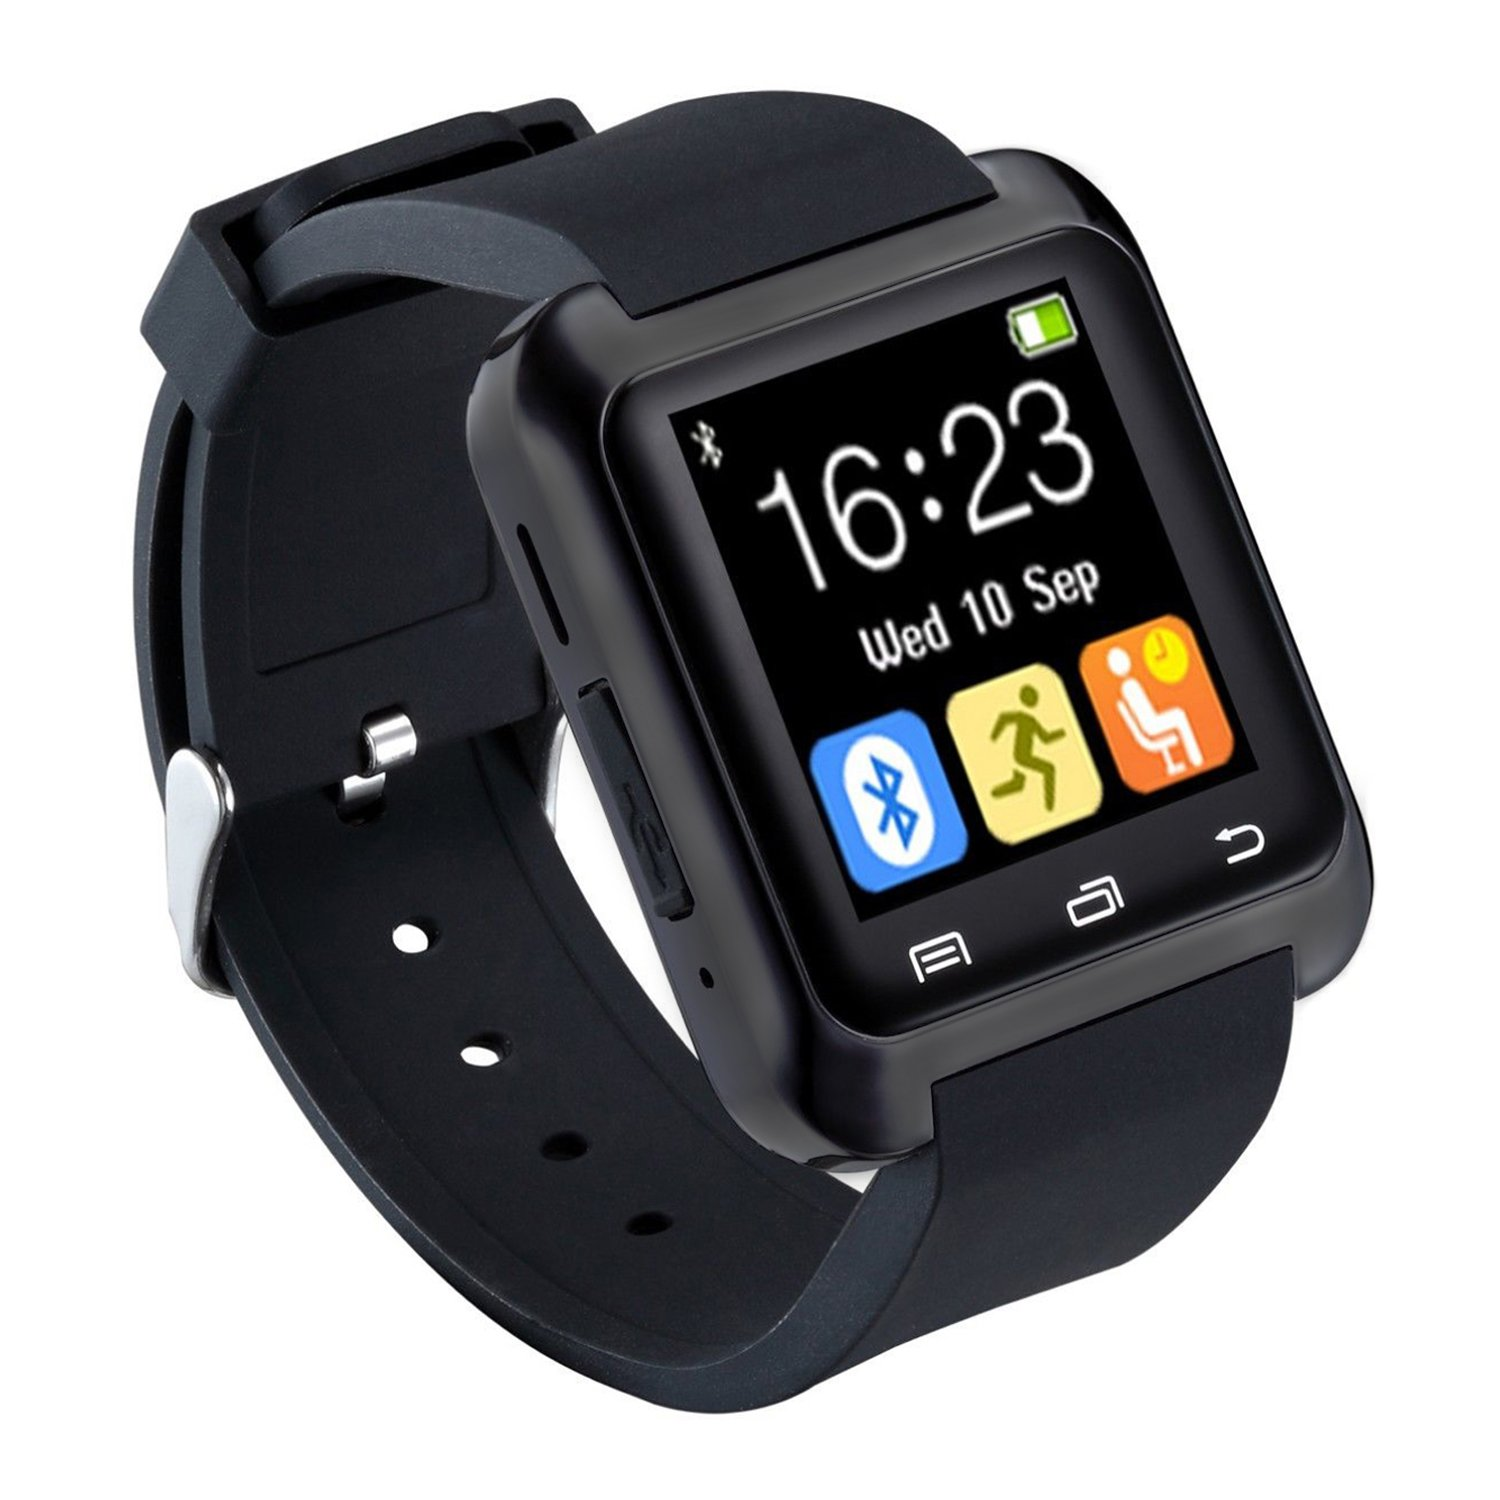 bluetooth smartwatch sport smart fitness uhr armband telefon uhren f r android ebay. Black Bedroom Furniture Sets. Home Design Ideas